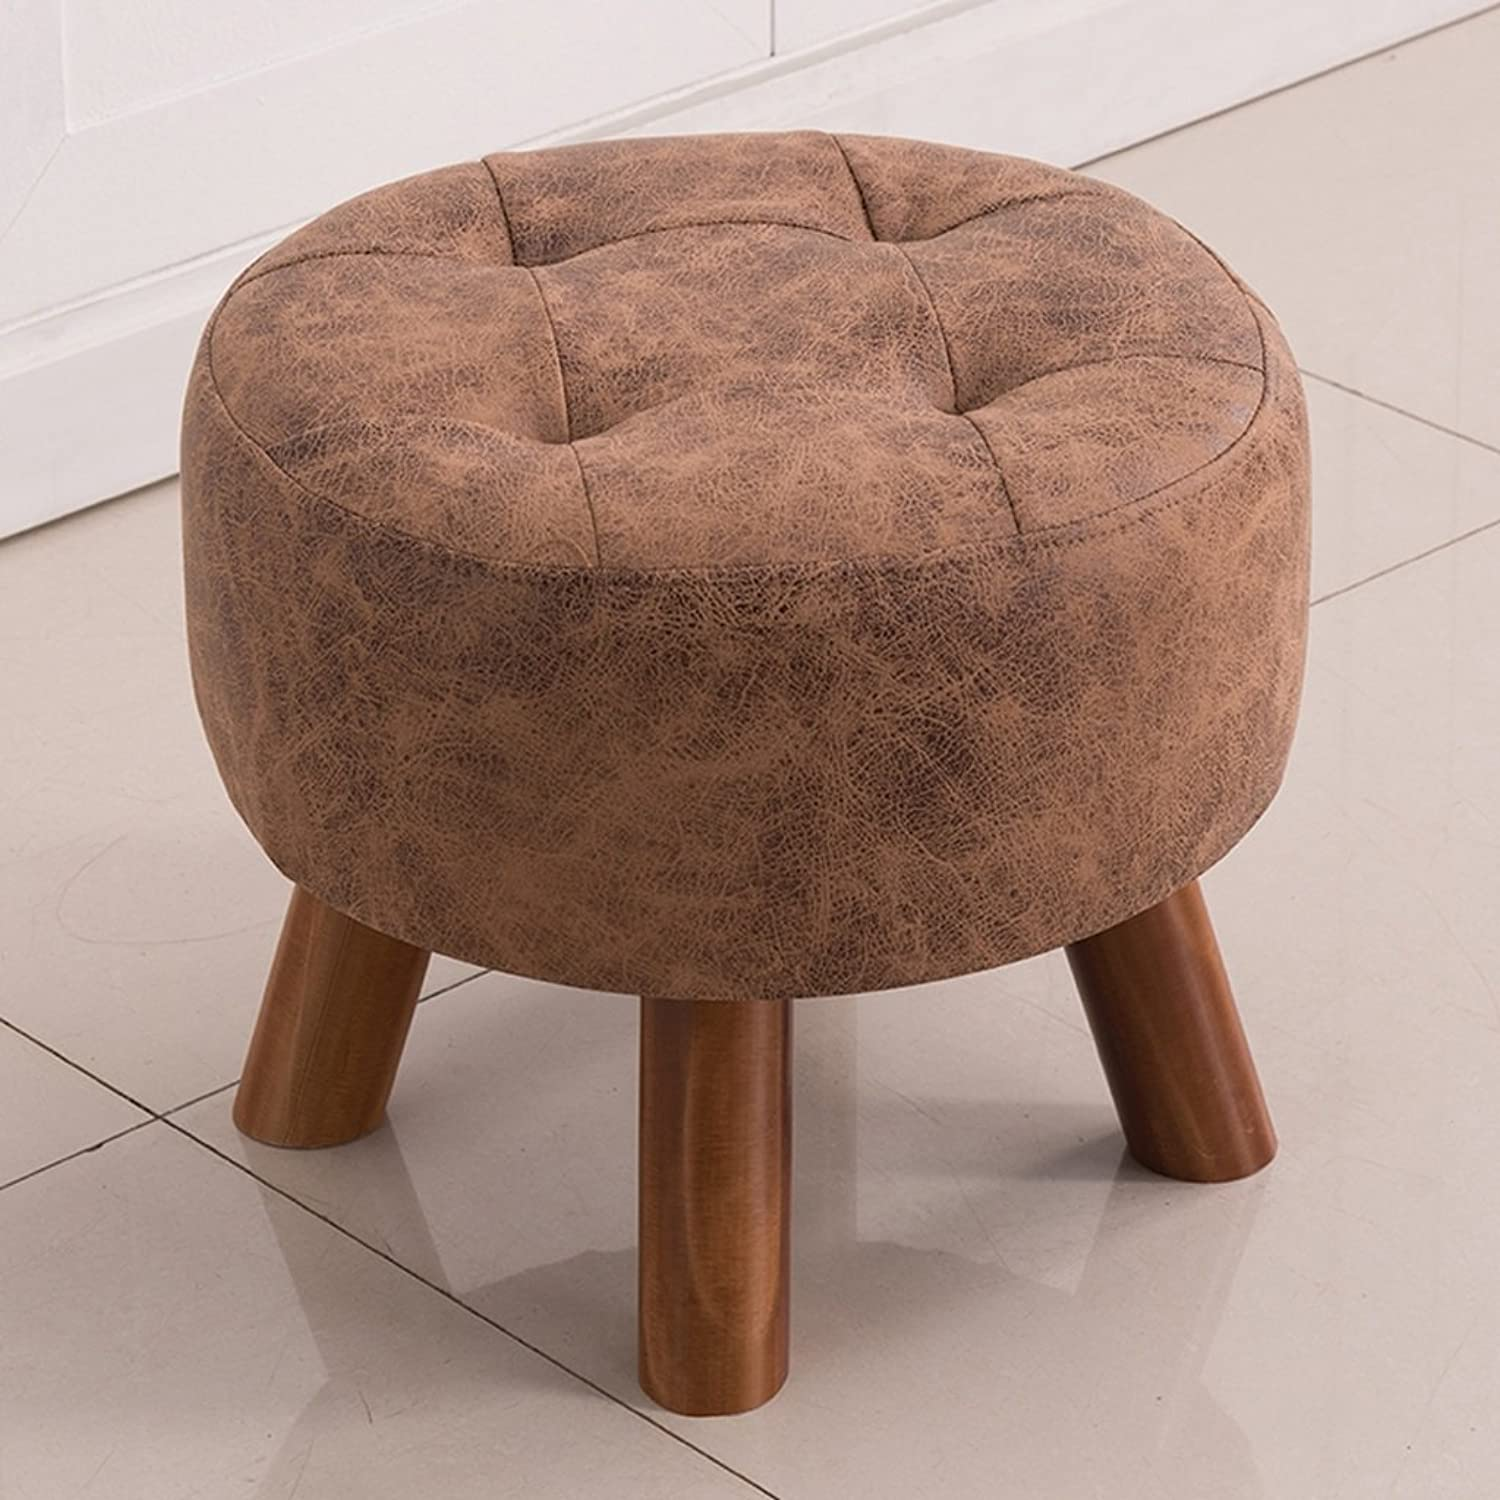 Solid Wood Small Round Stool Fashionable and Creative Tea Table Chair Technology Cloth Doorway for Change shoes Stool (color   Light Brown)